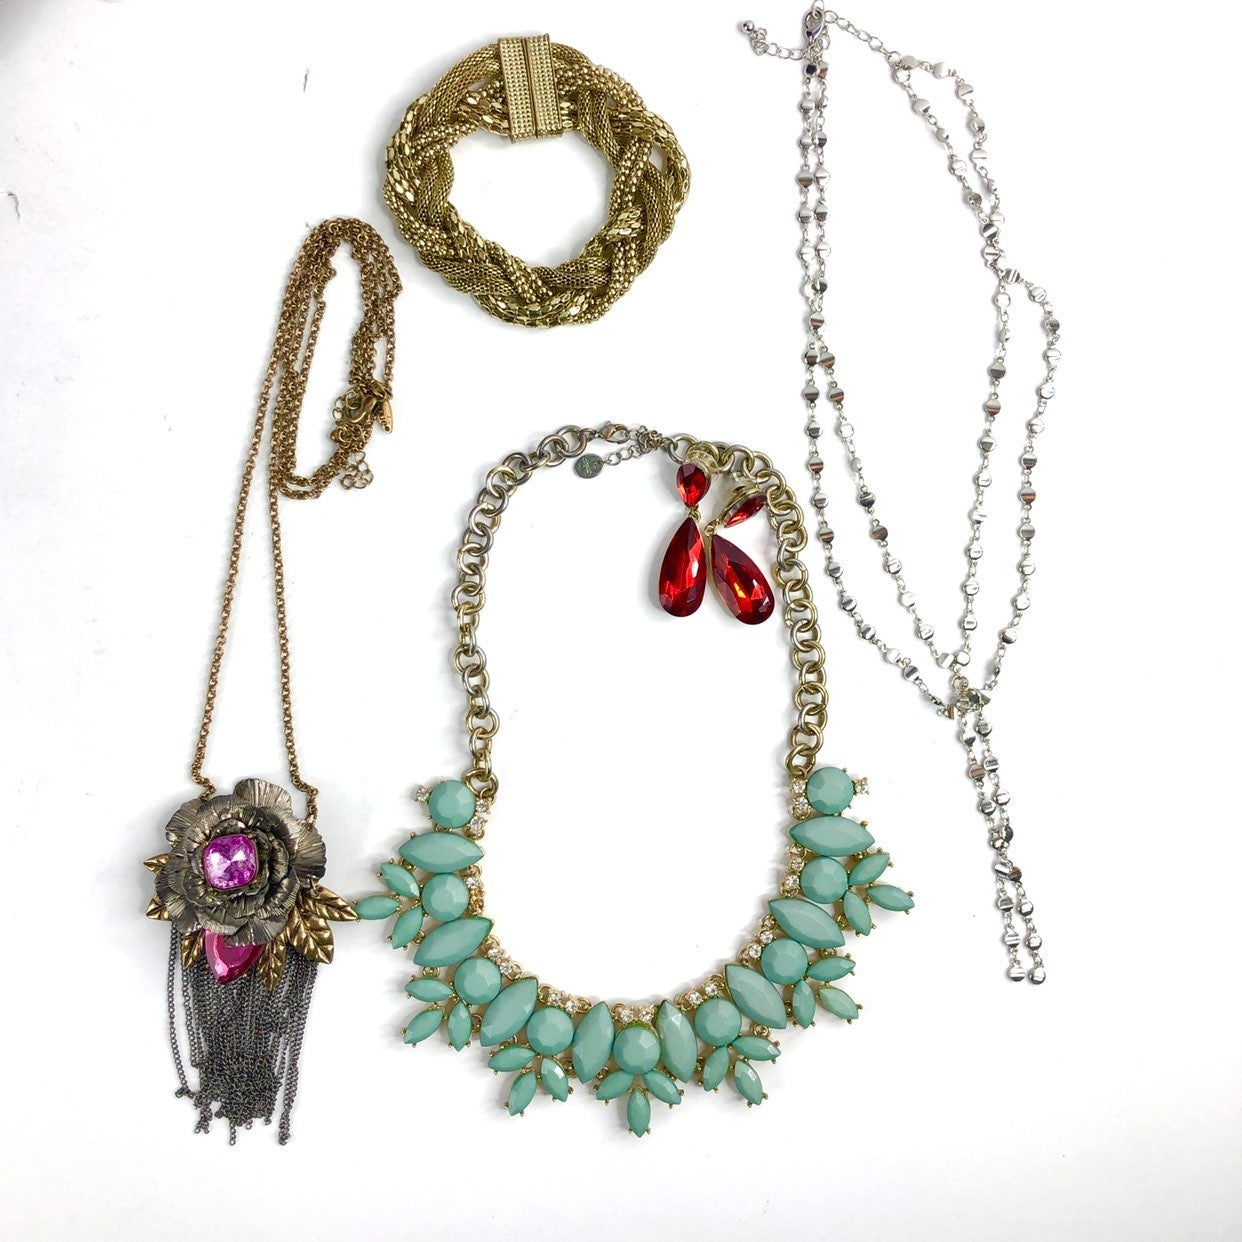 Avenue Charming Charlie Jewelry Lot